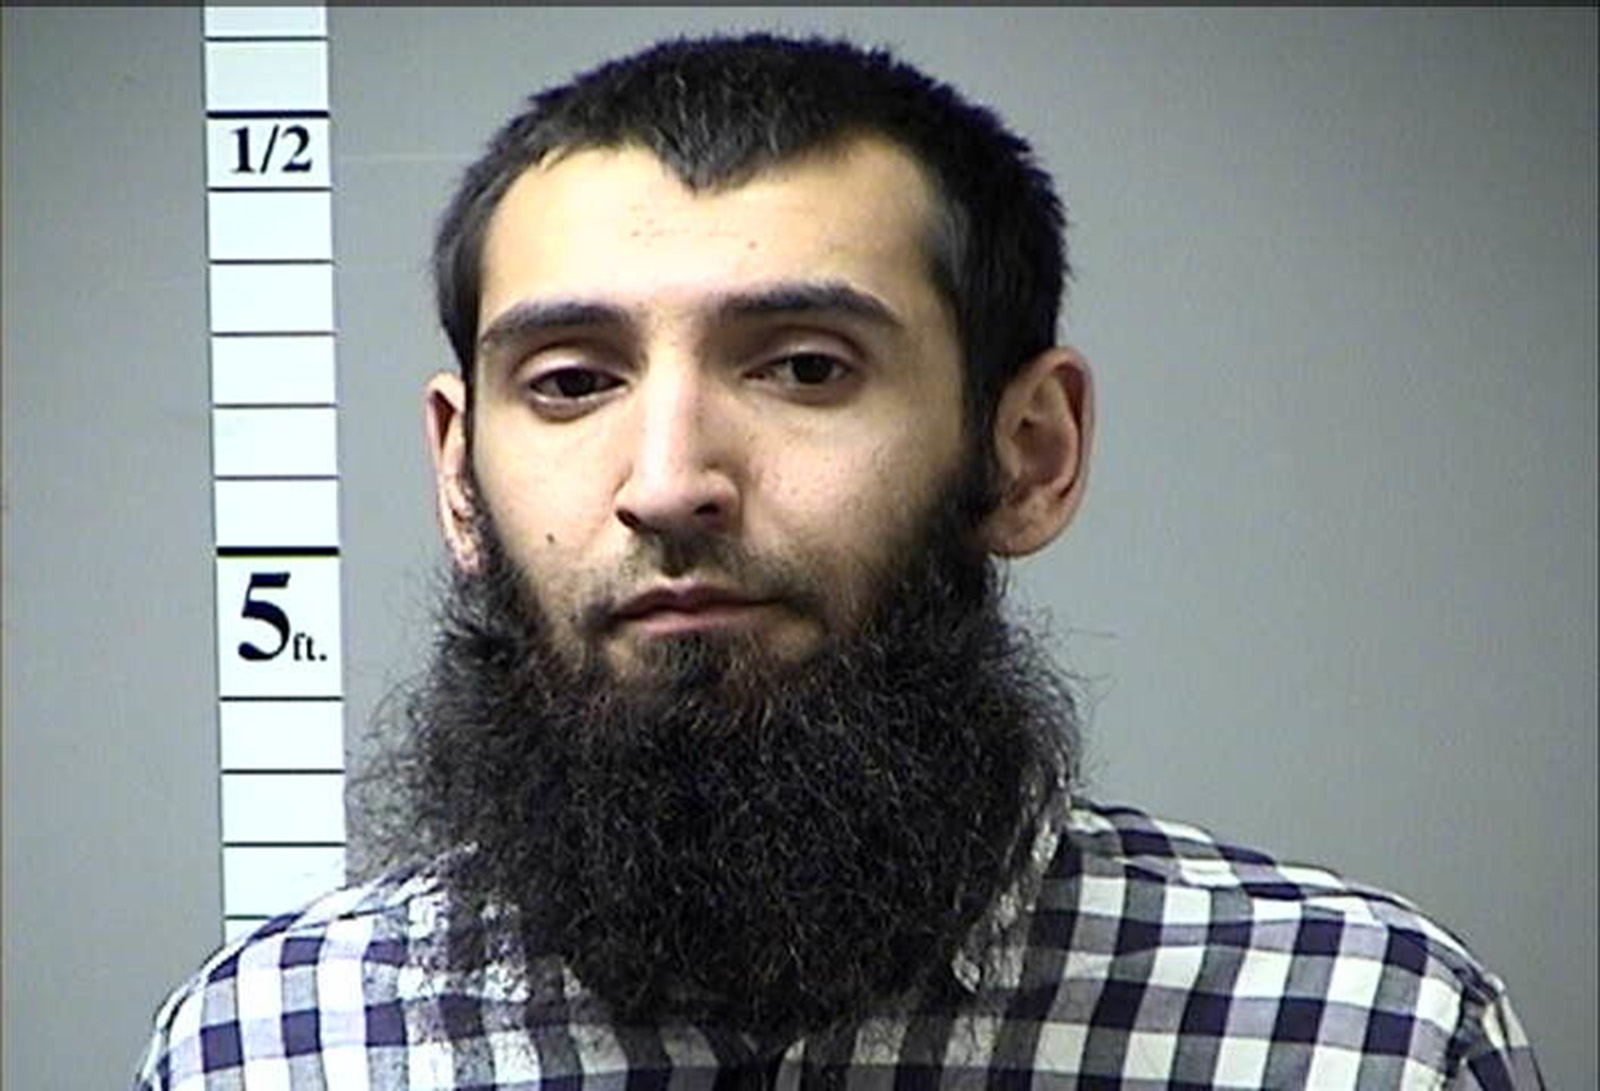 Accused NY bike path terrorist was under government surveillance 'for years'